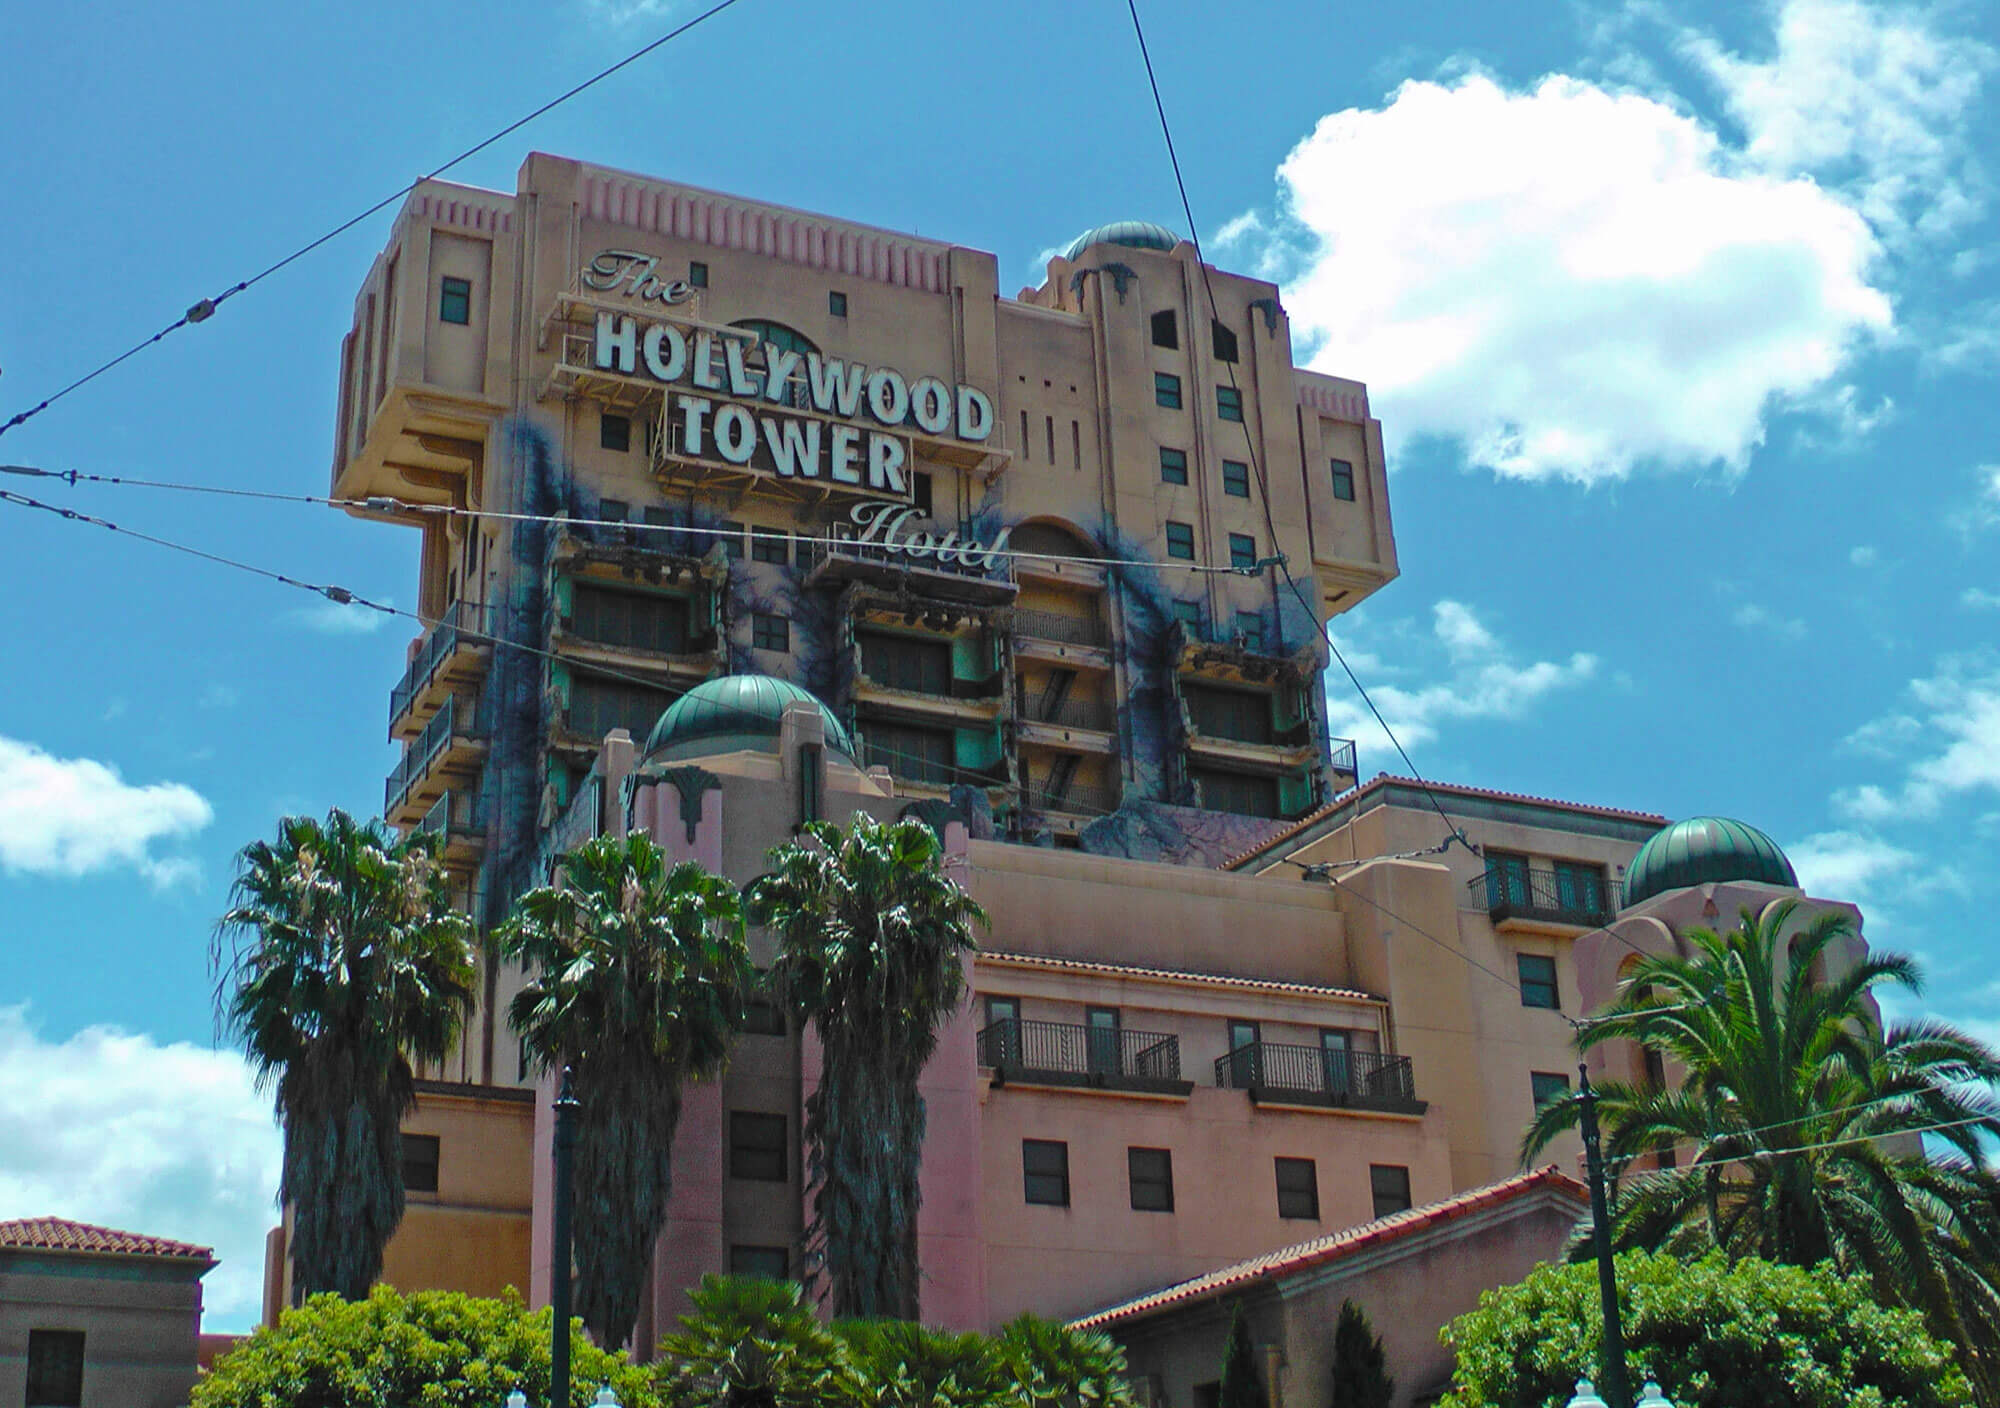 Disneyland Scary Rides - The Twilight Zone Tower of Terror